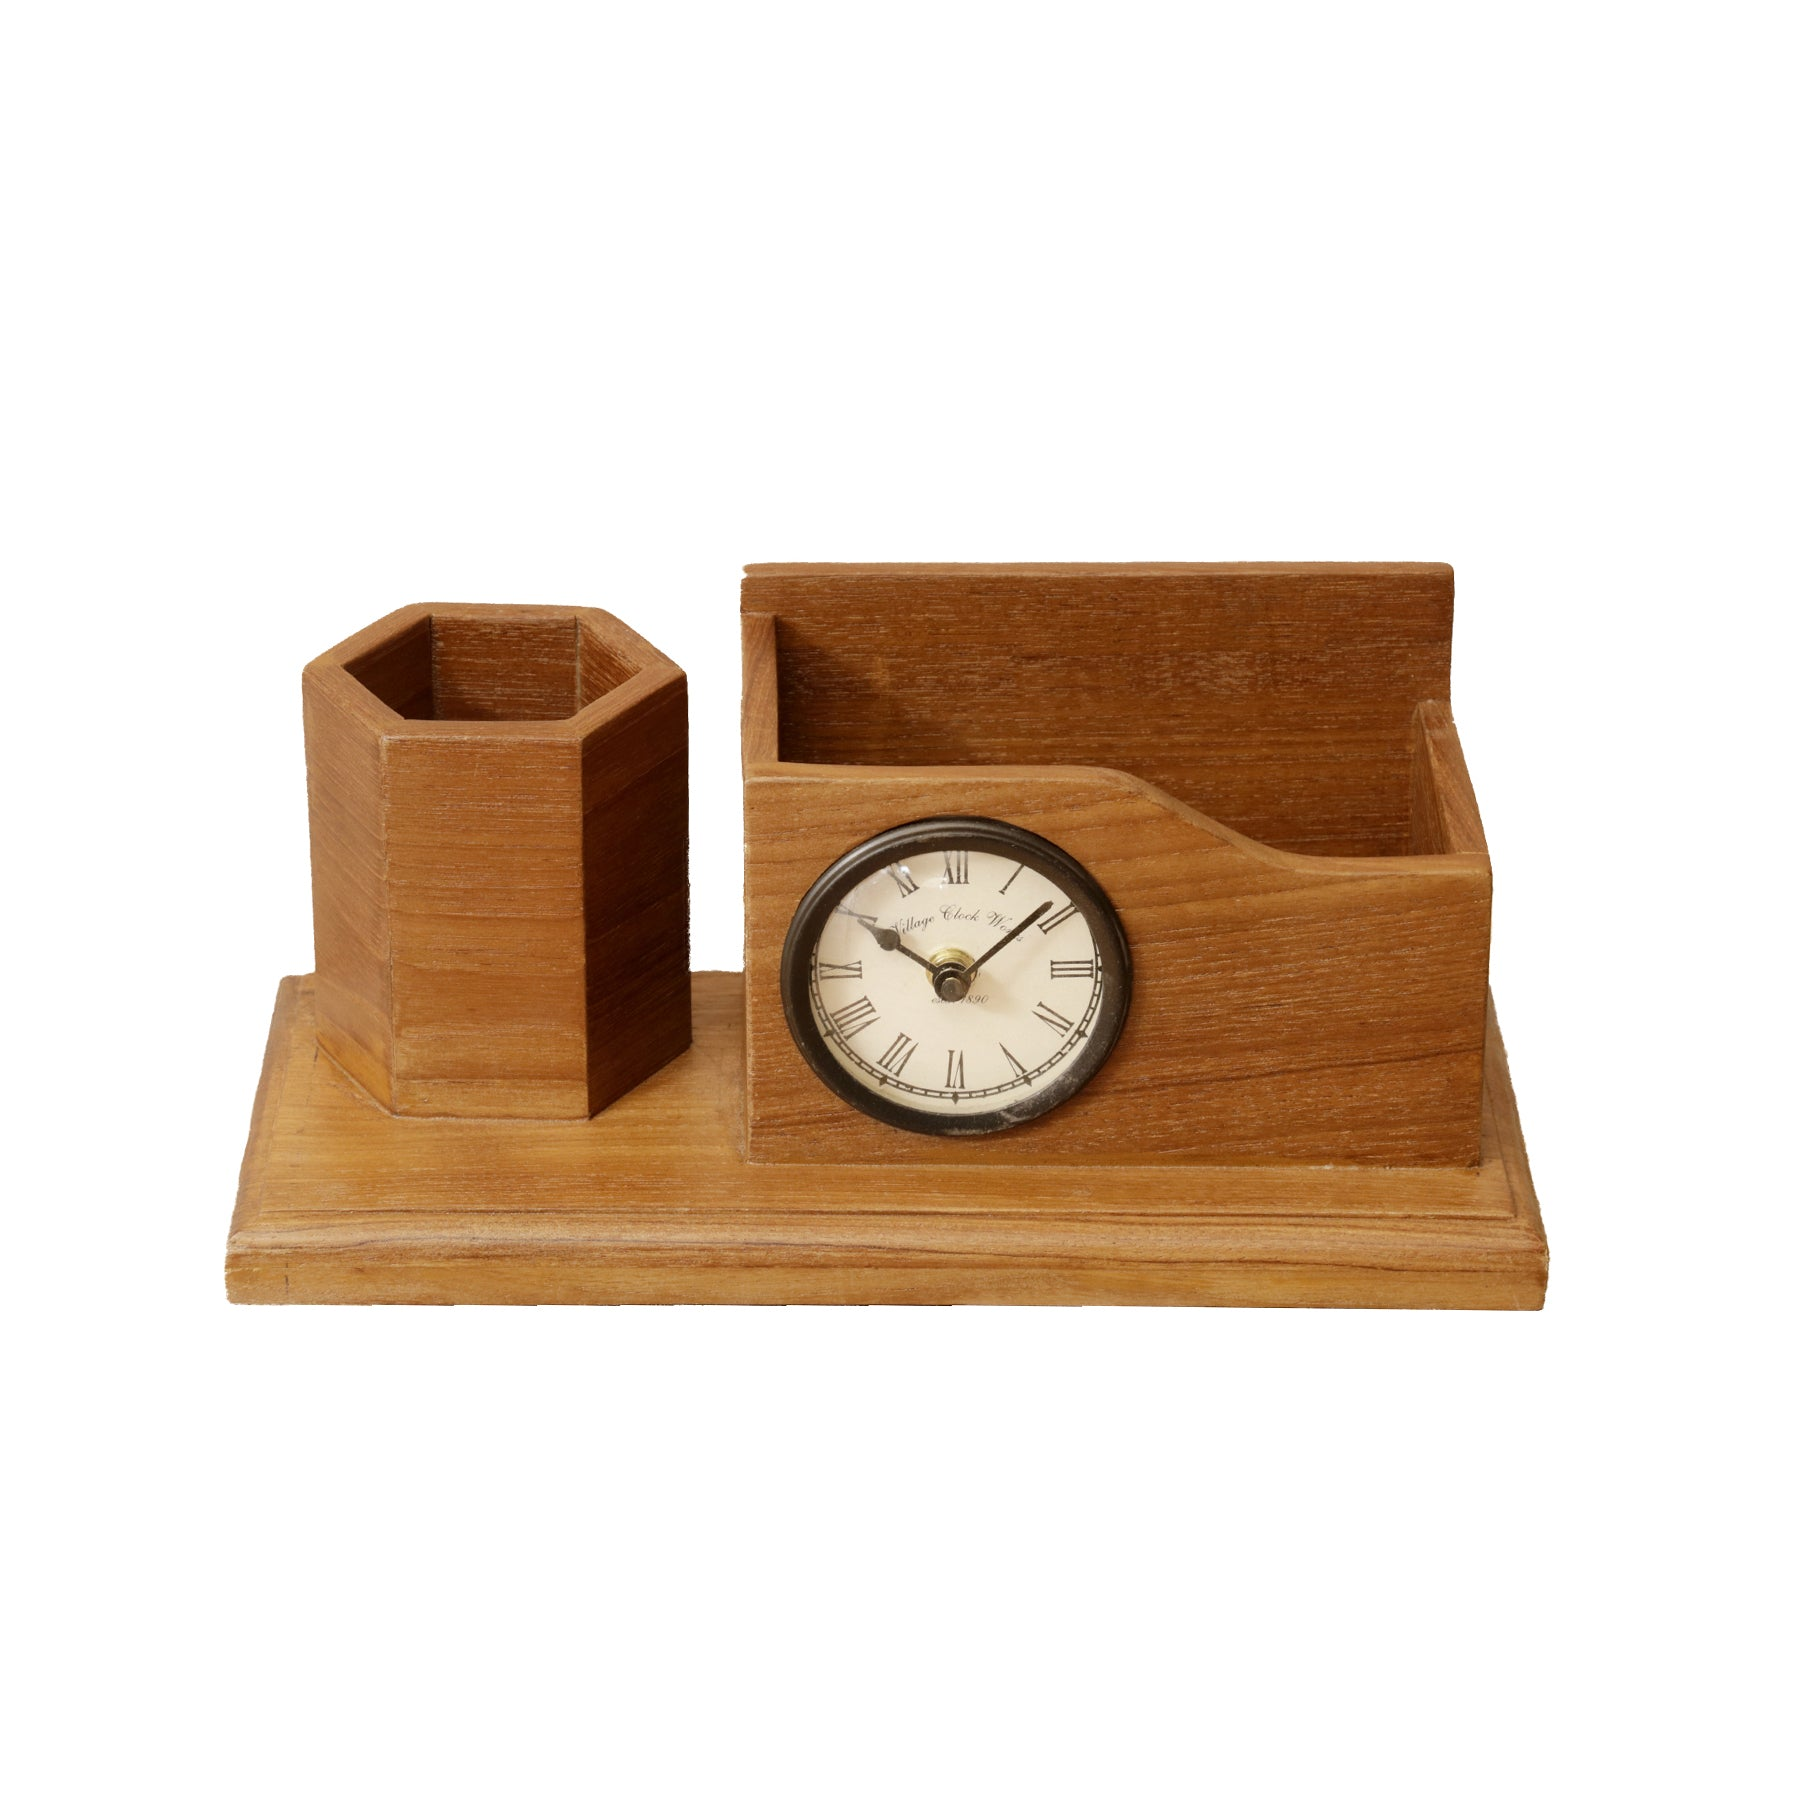 Wooden Desk Organizer with Natural Finish – 2 Slots